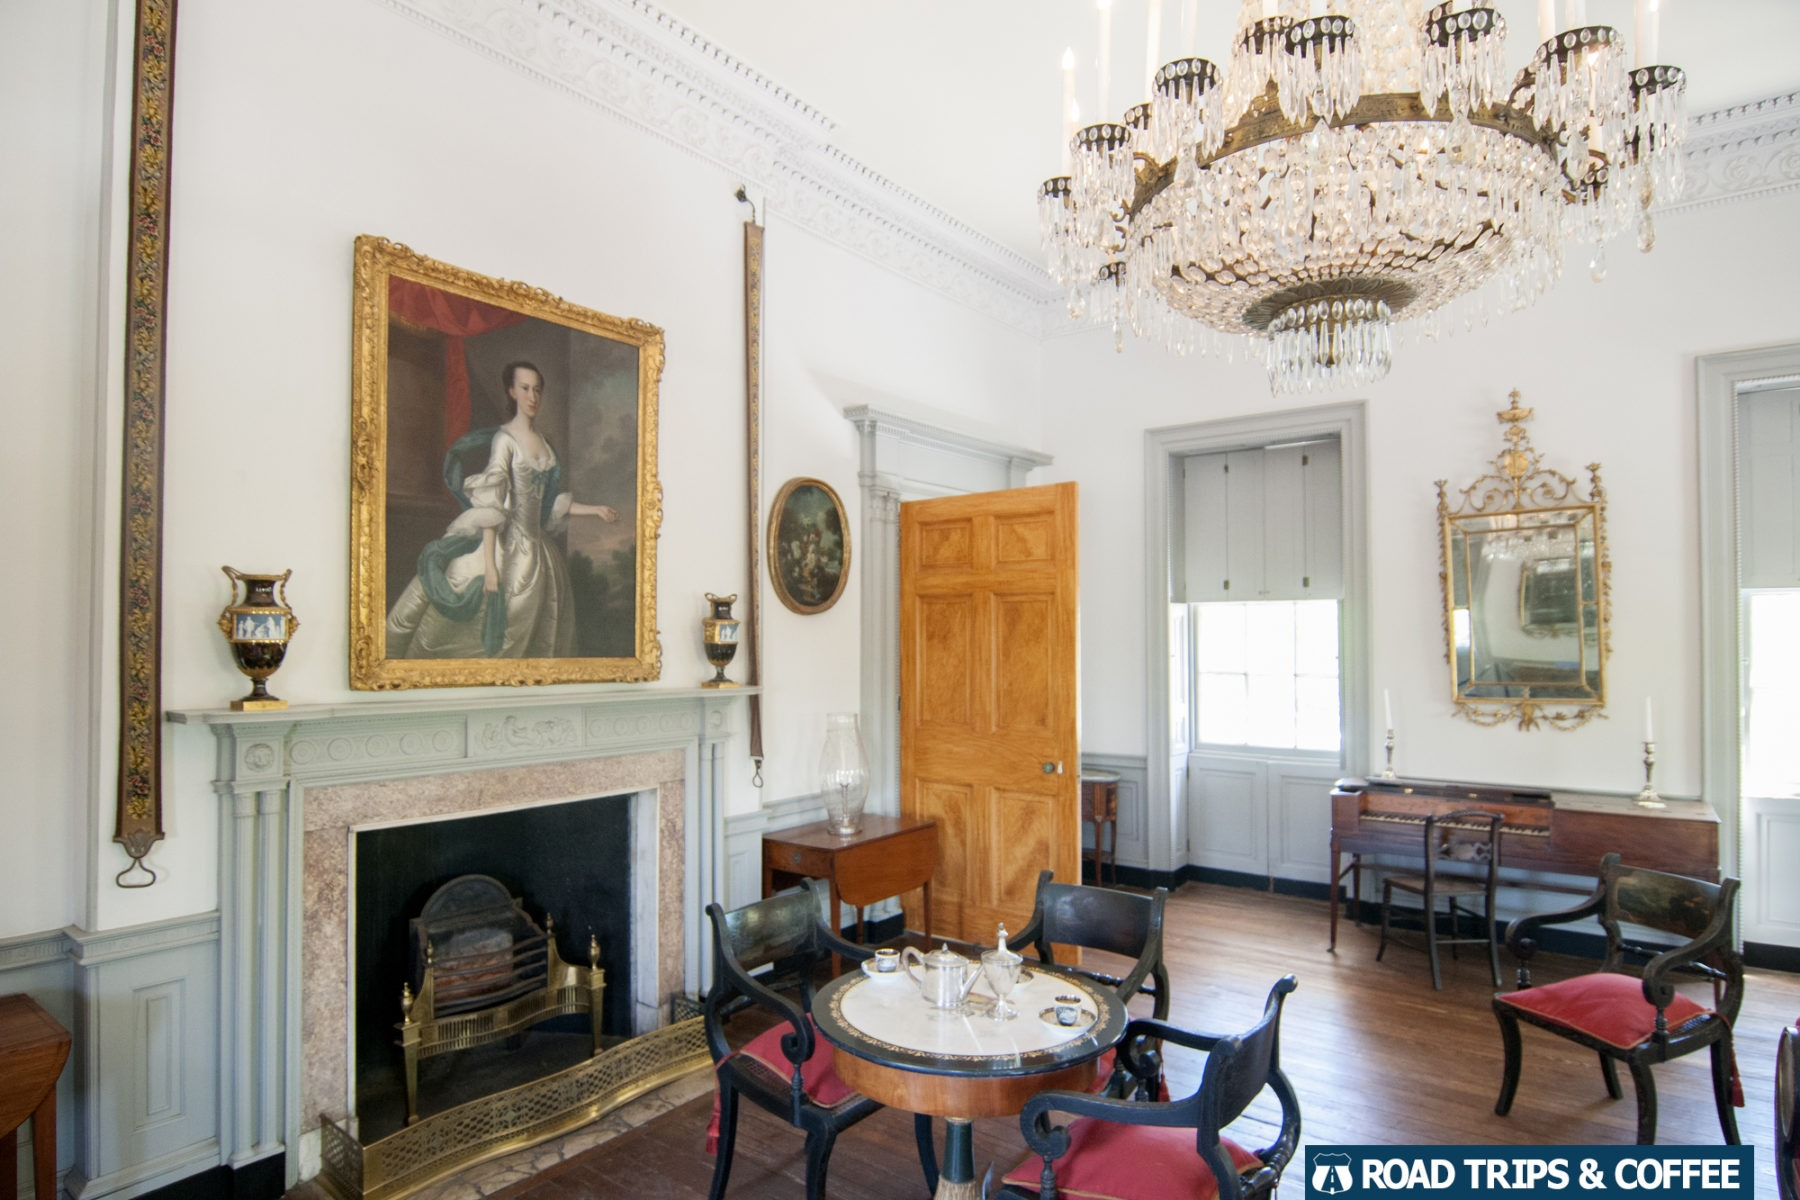 Posh decorated historic room with a hanging chandelier and portrait paintings on the walls at the Joseph Manigault House in Charleston, South Carolina